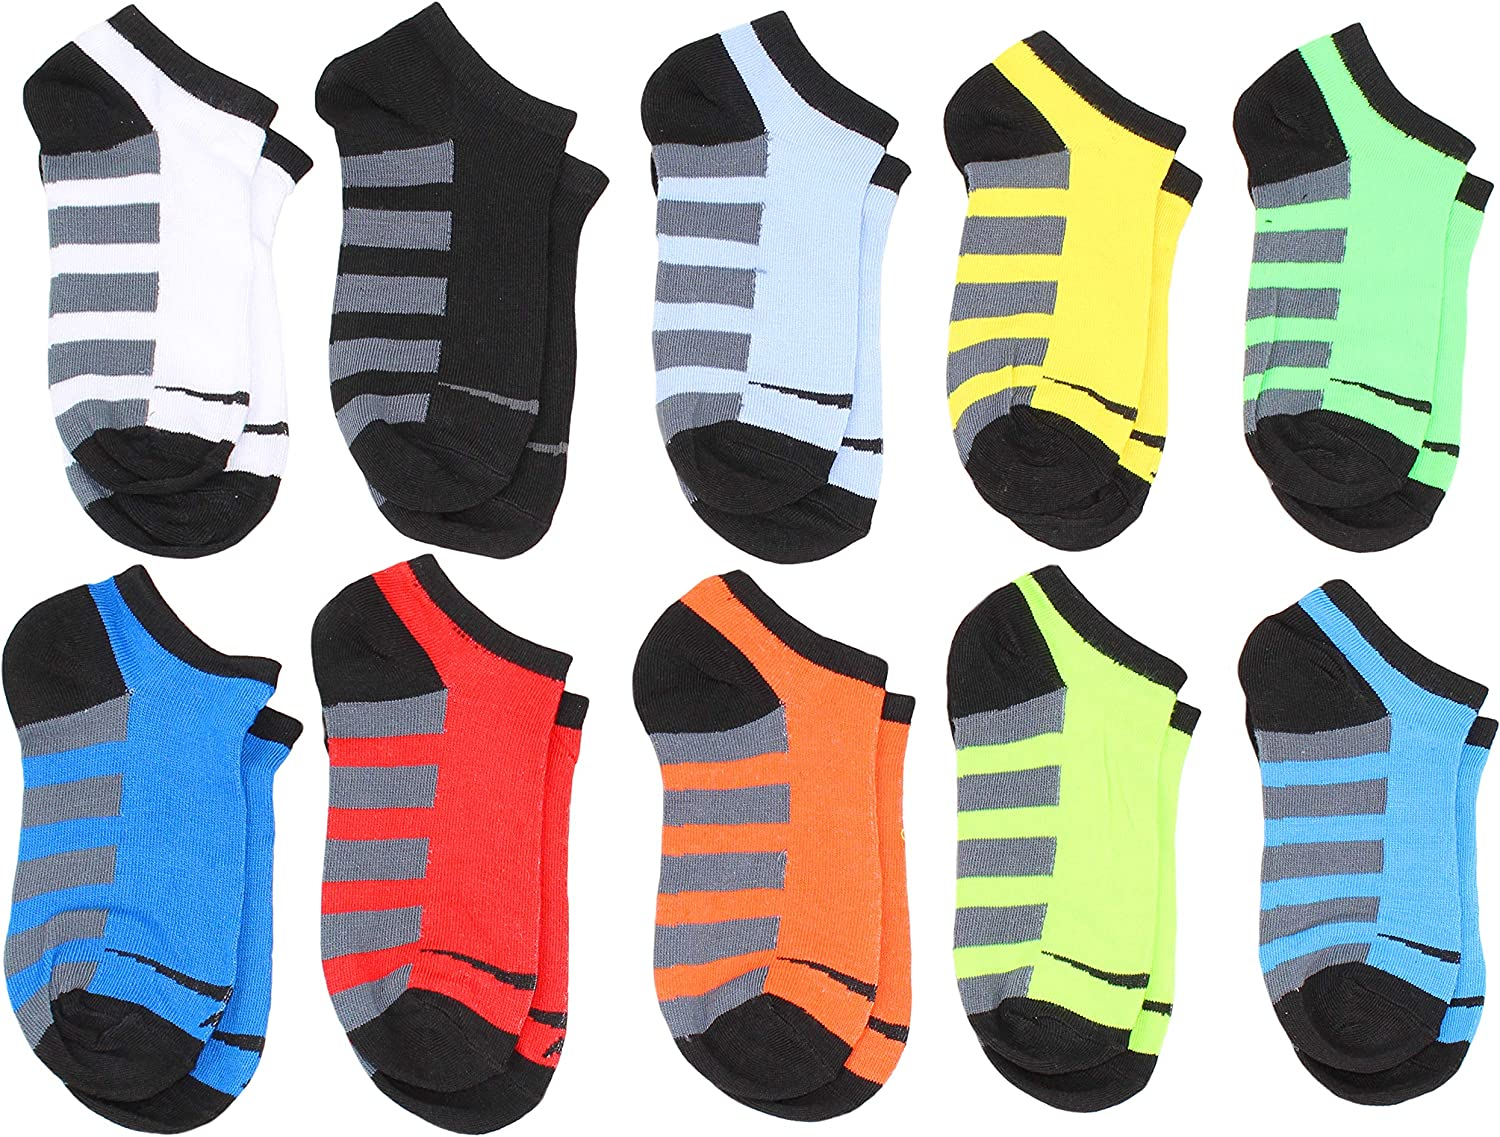 Sport Essentials Boys Youth 10-Pack No Show Performance Socks